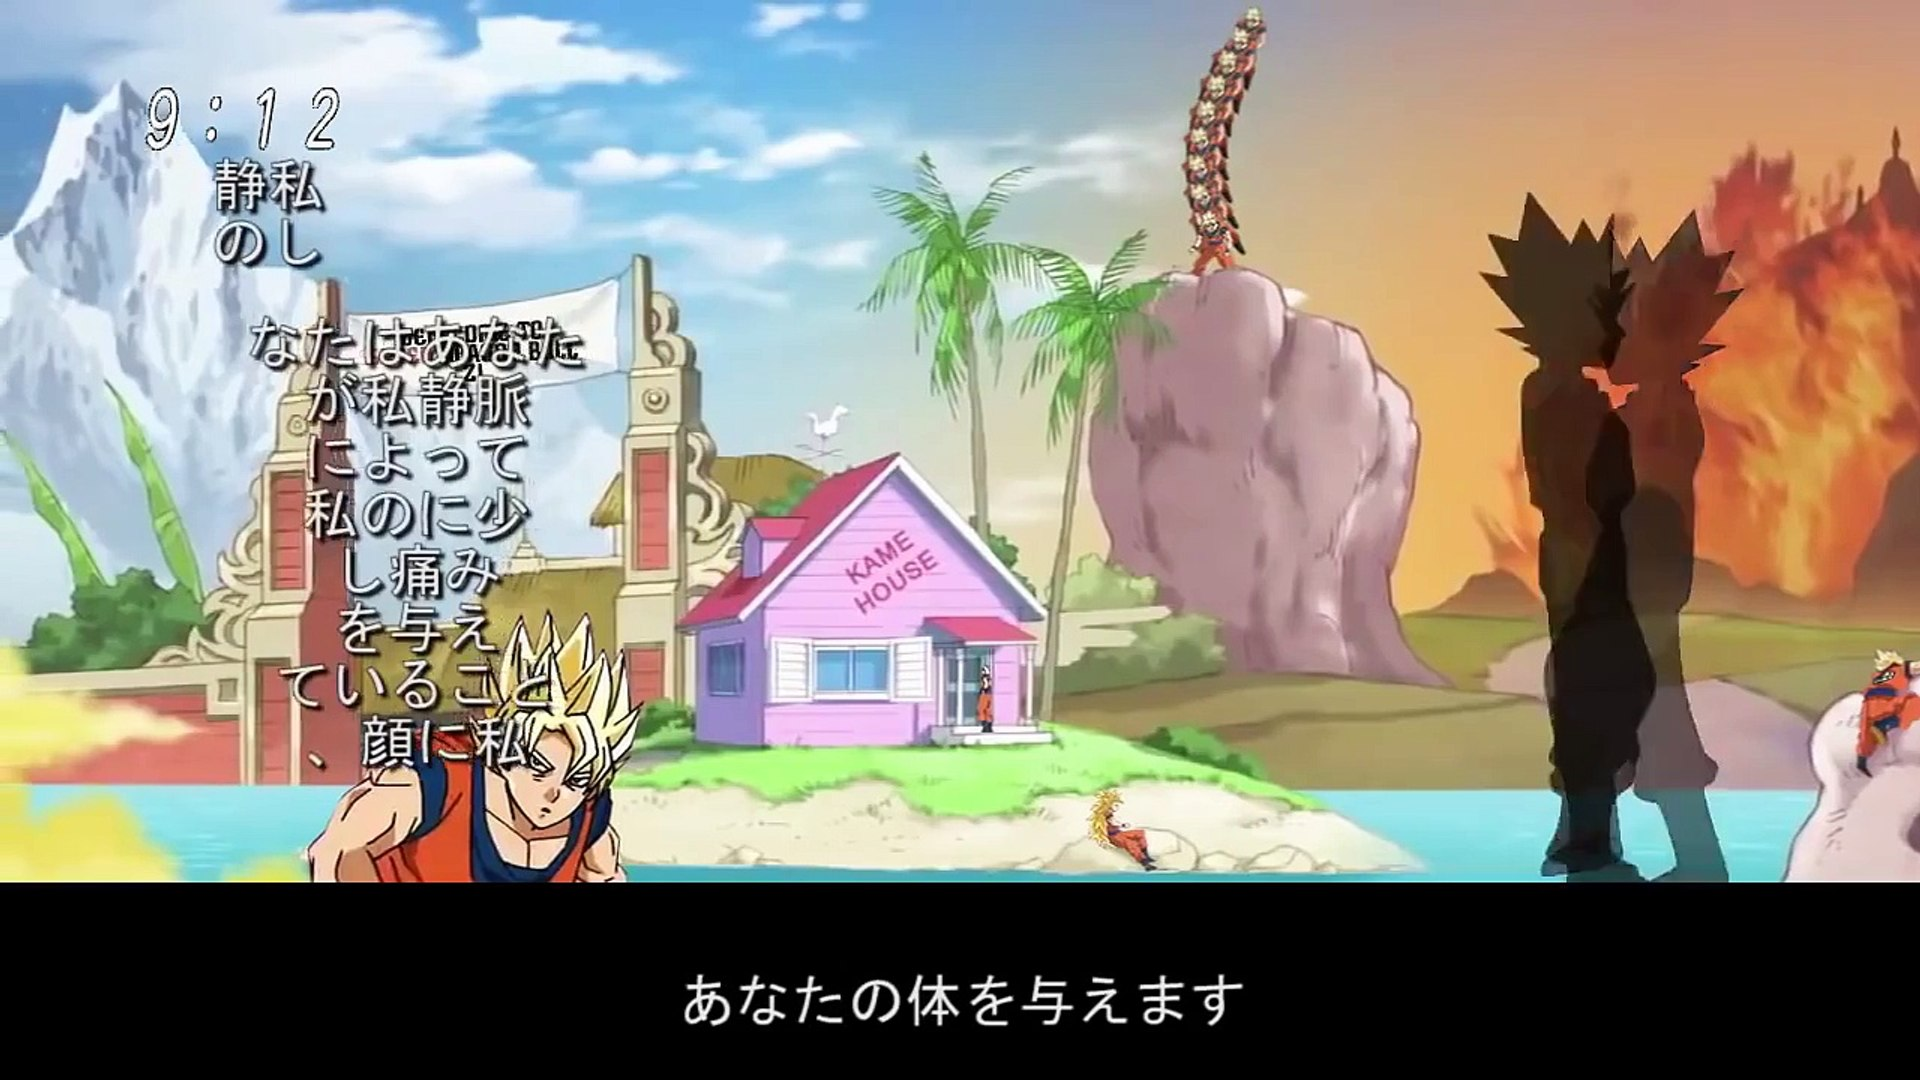 New Dragon Ball Super Ending featuring Bad Animation